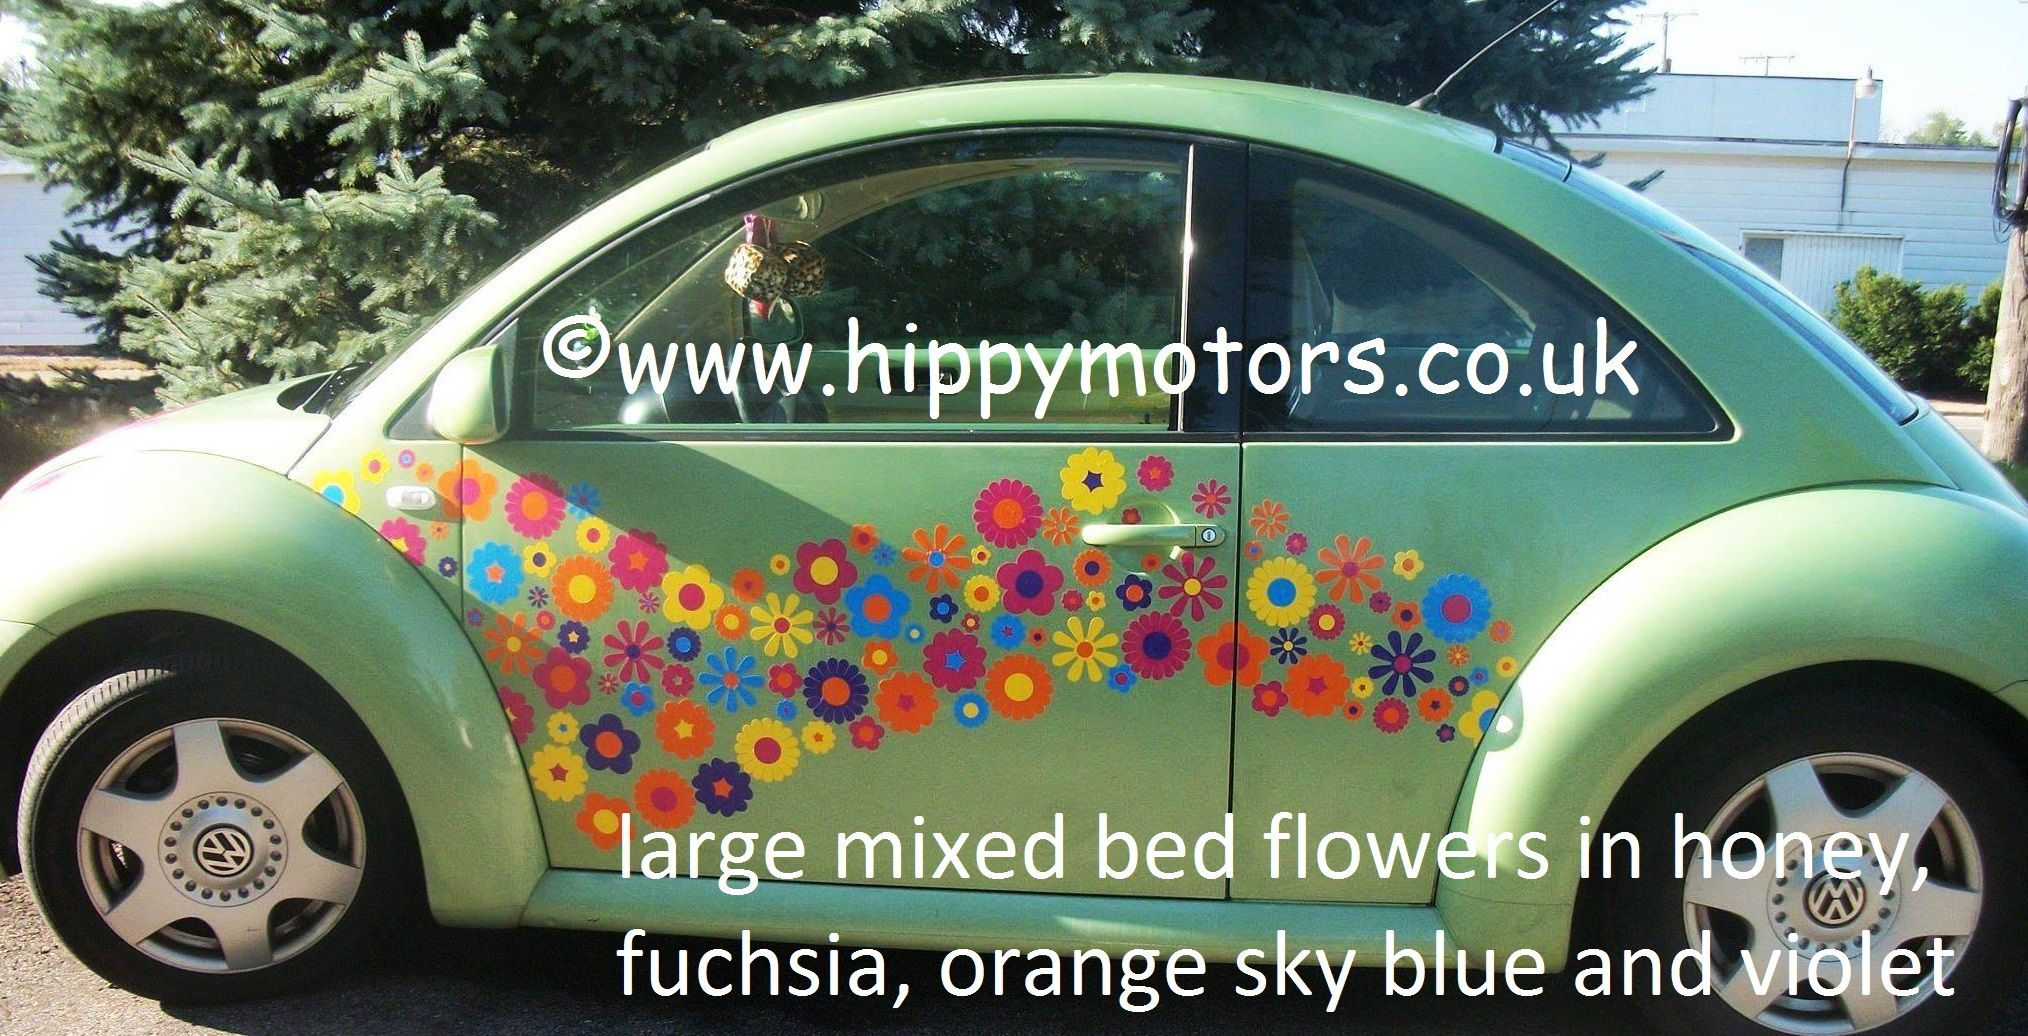 large mixed flower car decals stickers by hippymotors  https://www.hippymotors.